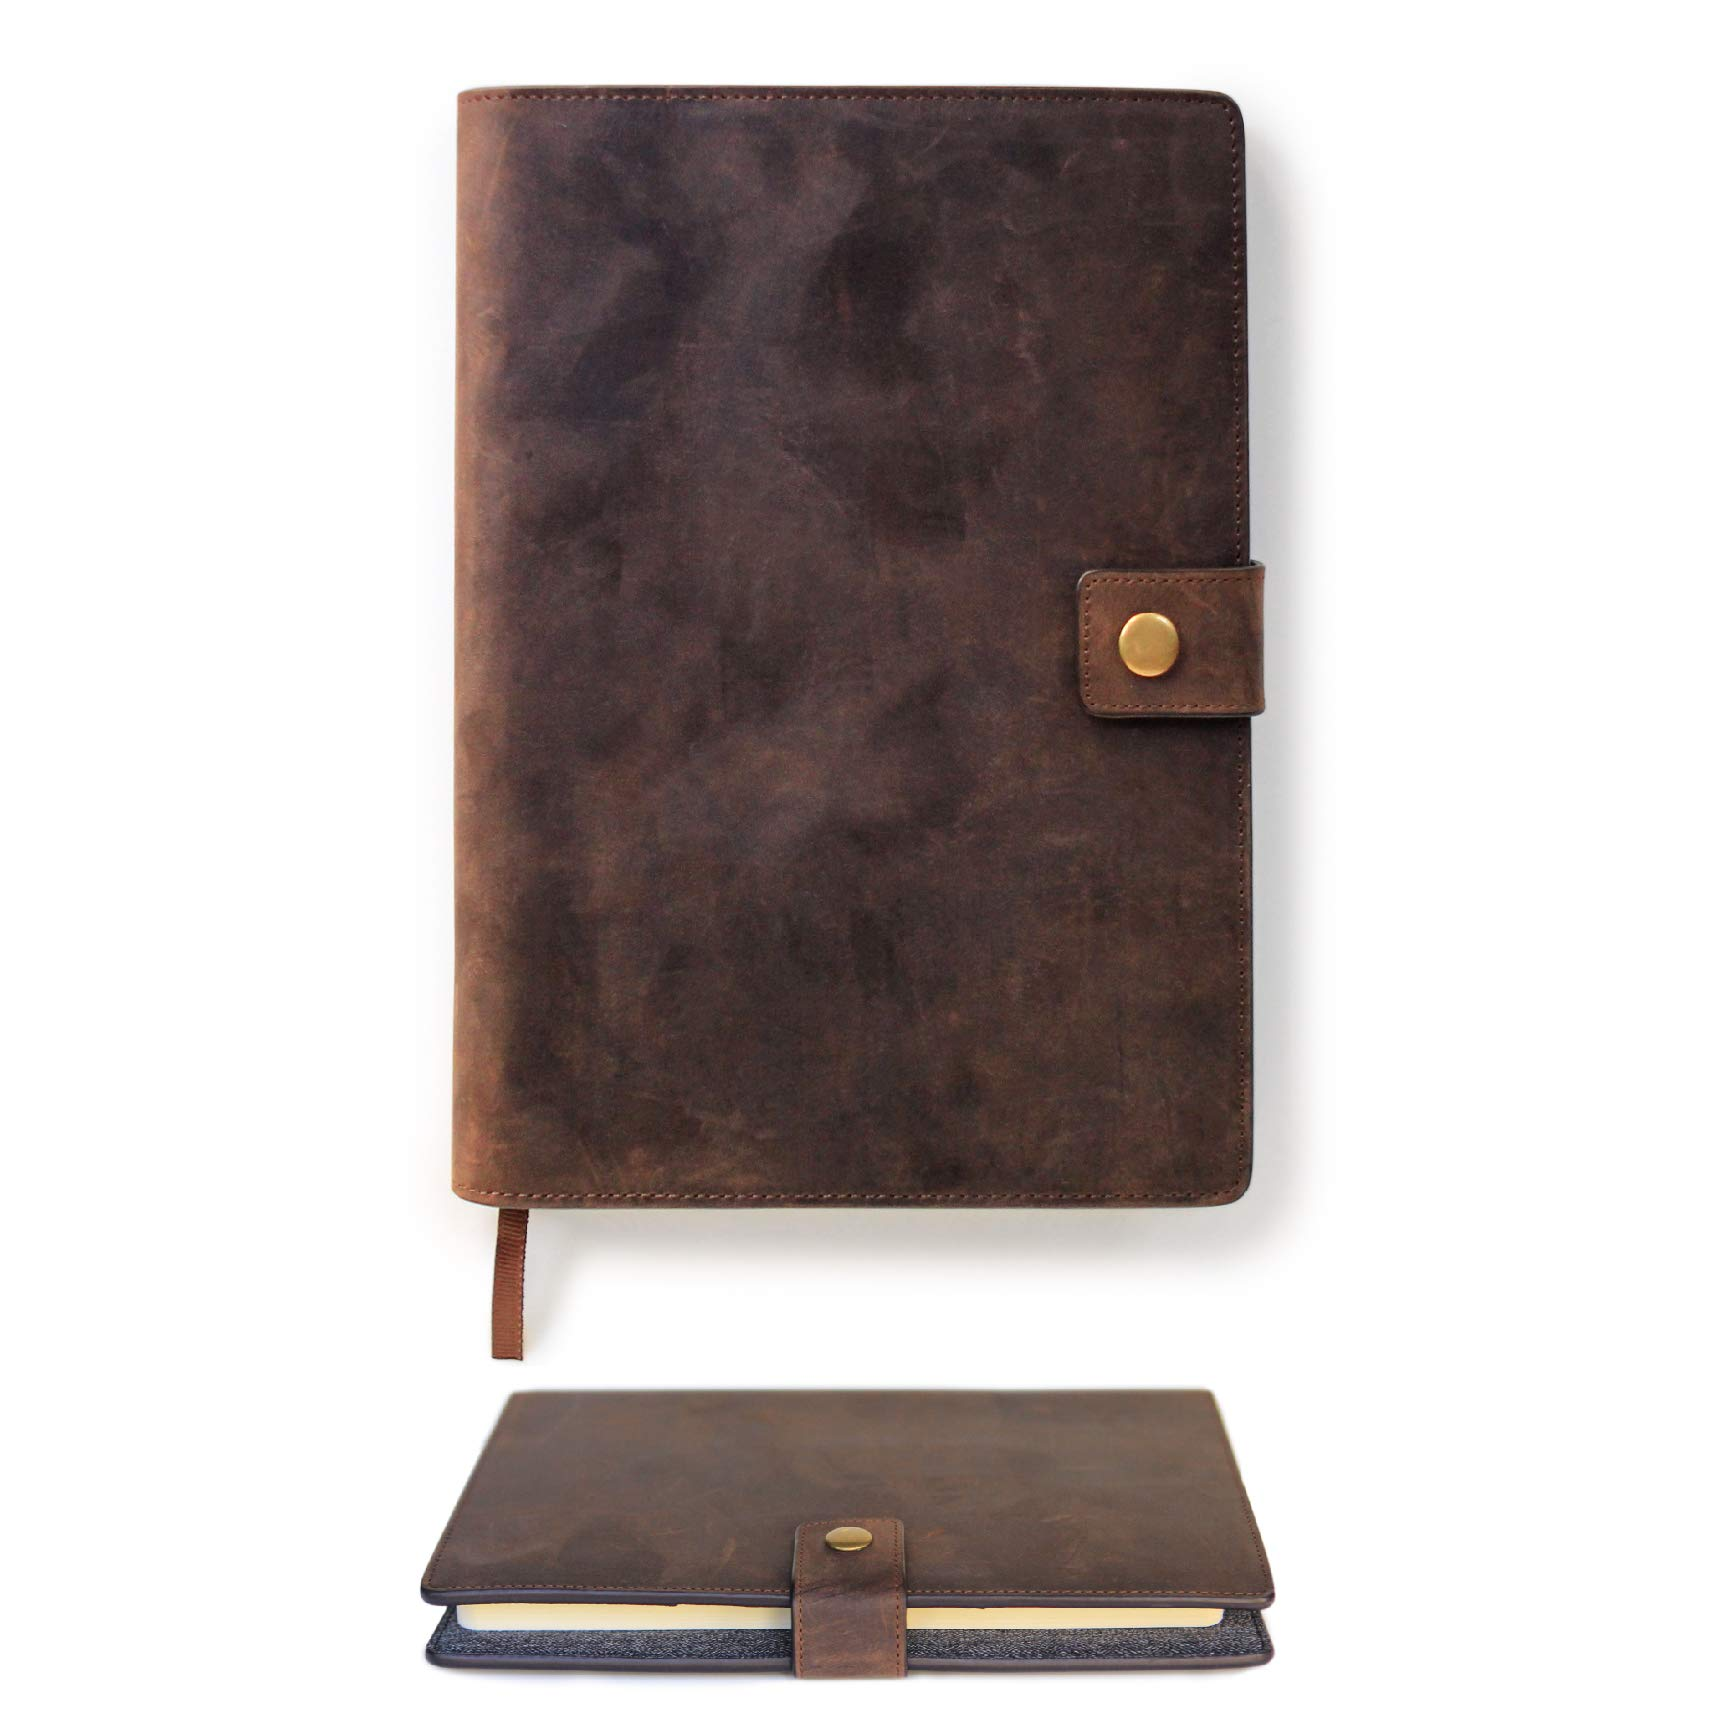 Full Grain Premium Leather Refillable Journal Cover with A5 Lined Notebook, Pen Loop, Card Slots, & Brass Snap by Case Elegance by CASE ELEGANCE